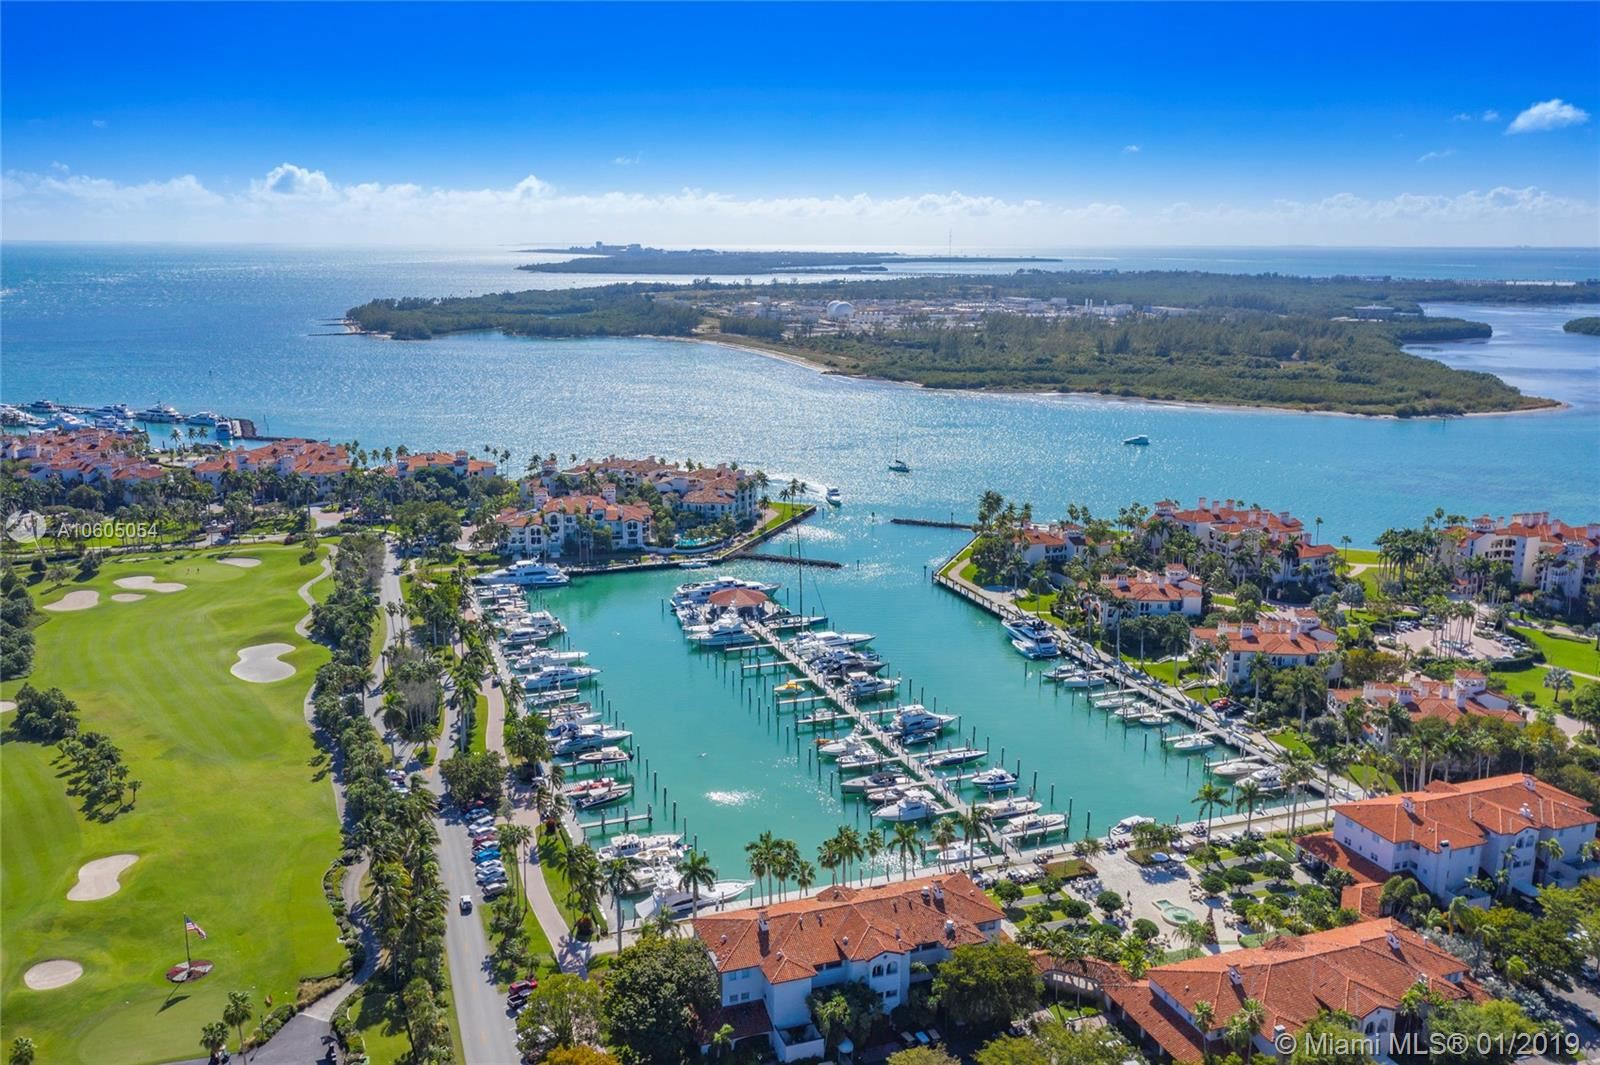 Photo 33 of Listing MLS a10605054 in 5203 Fisher Island Drive #5203 Miami FL 33109